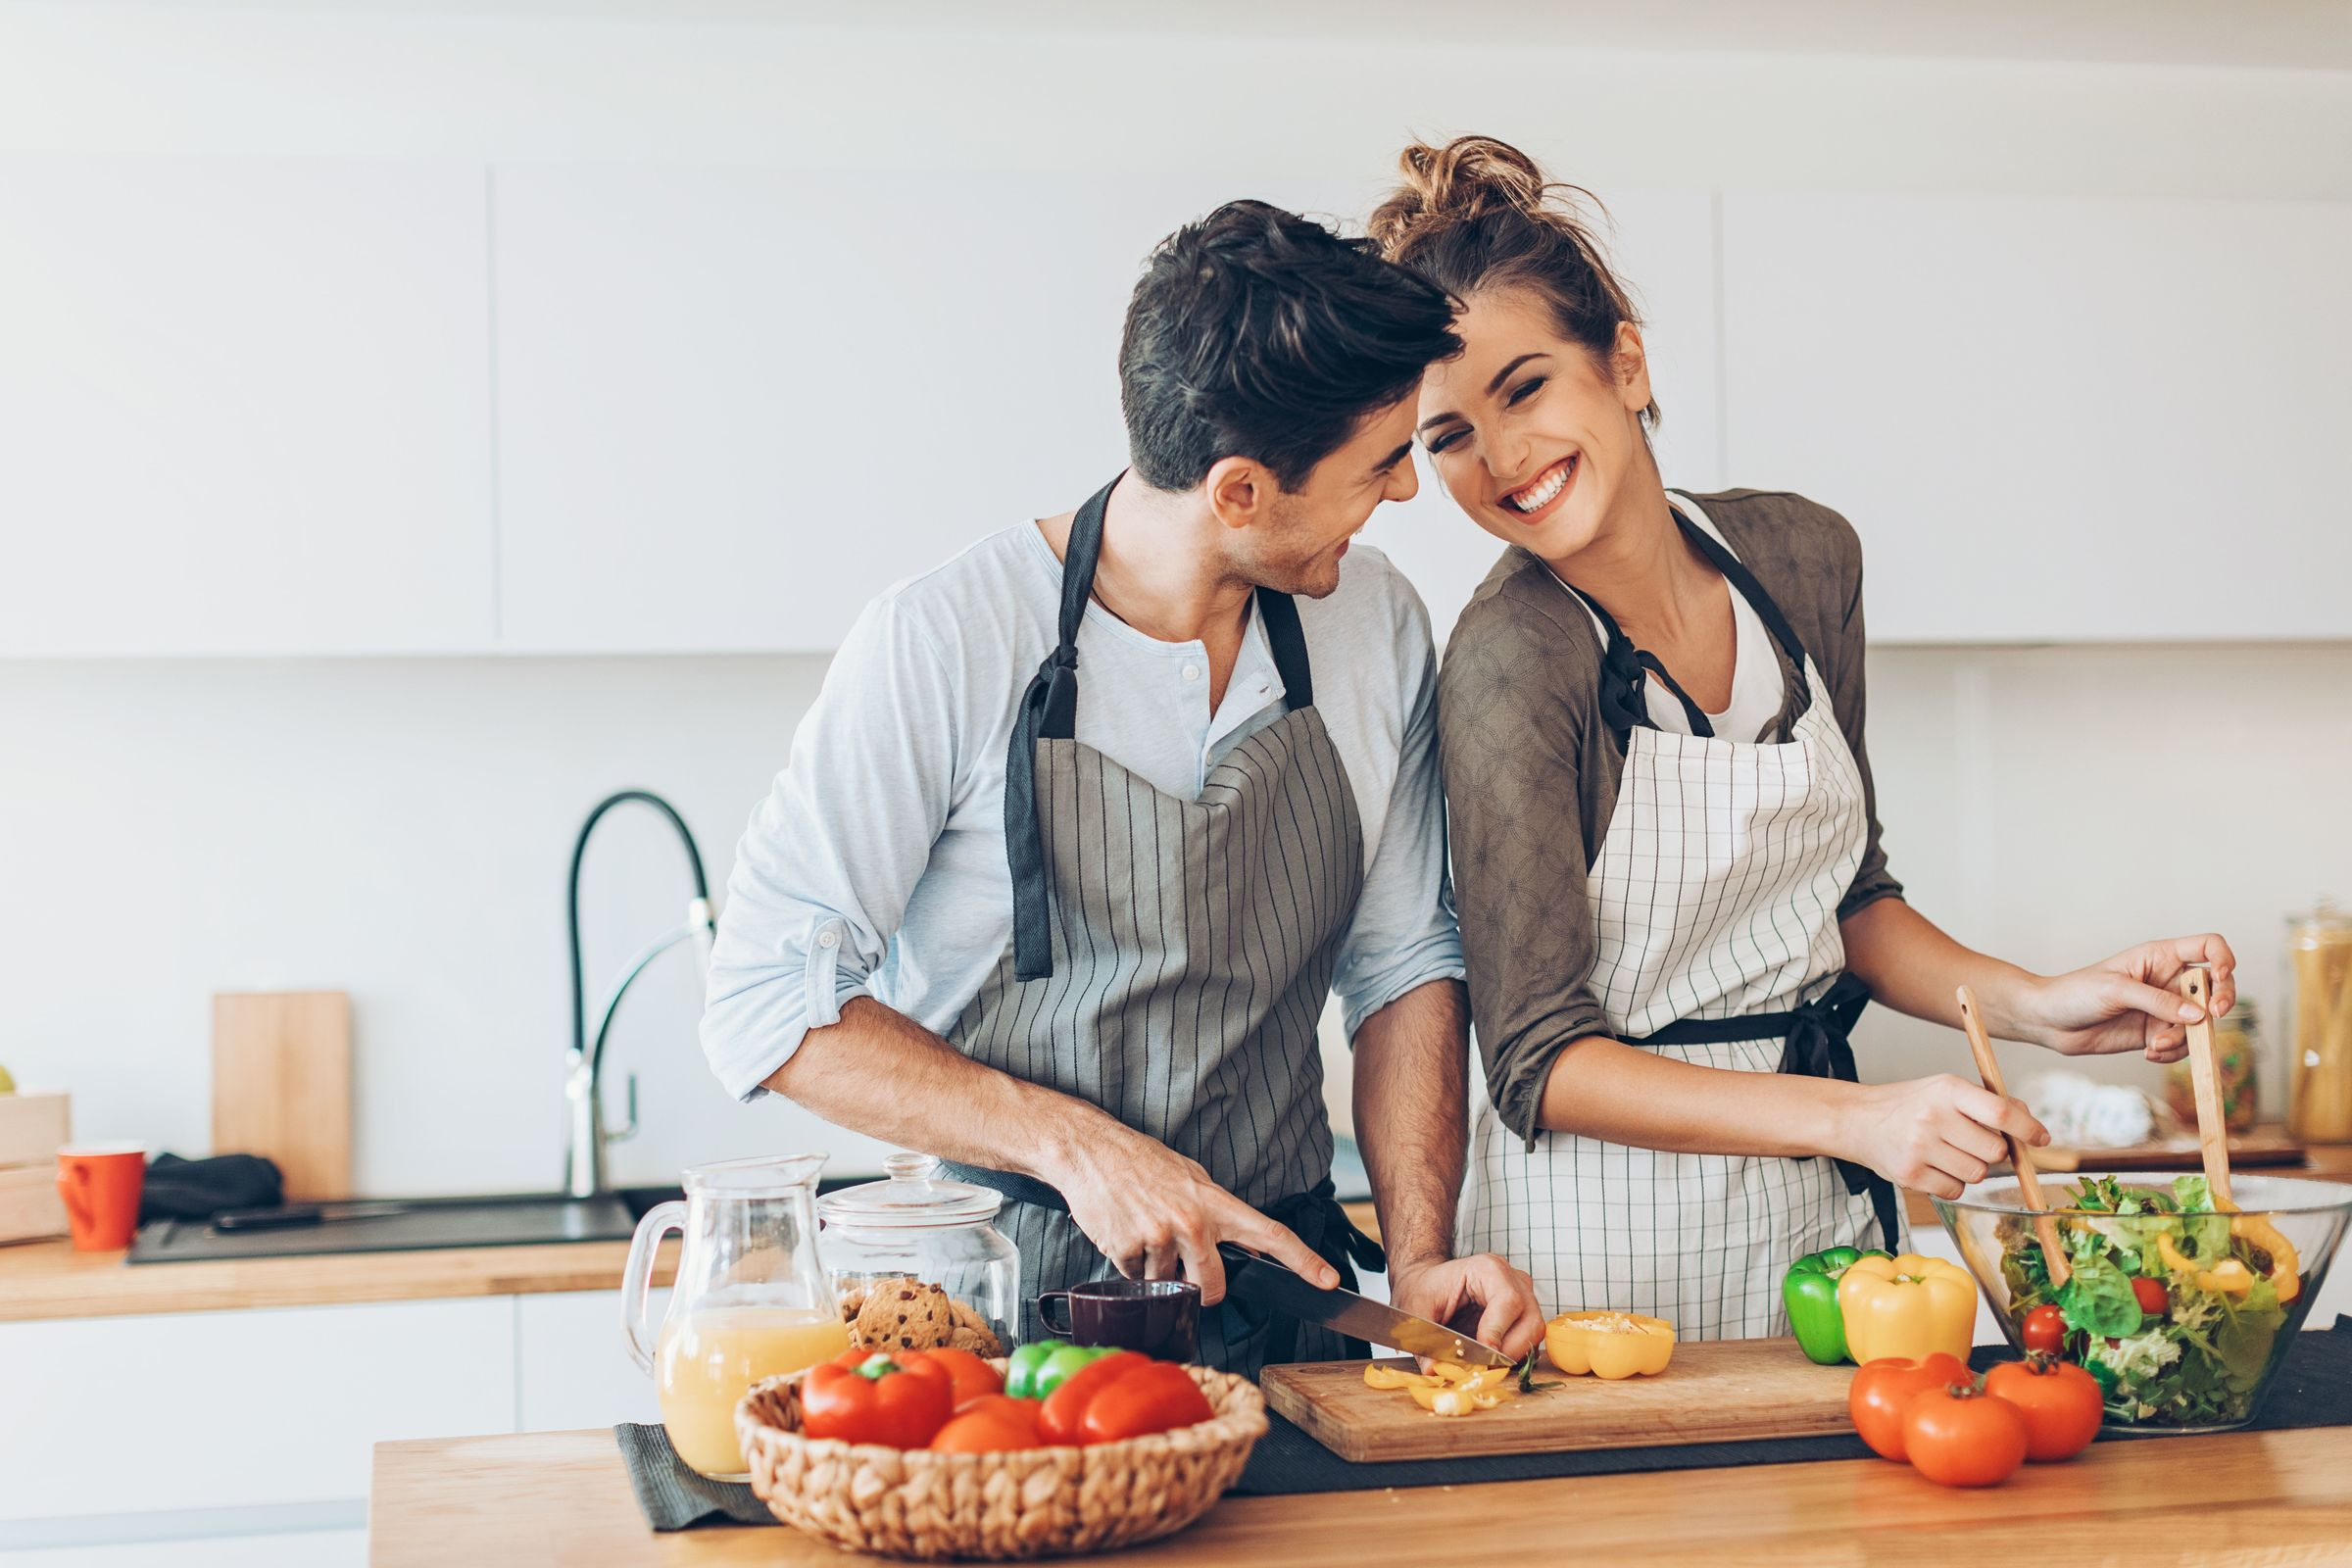 happy, smiling couple cooking